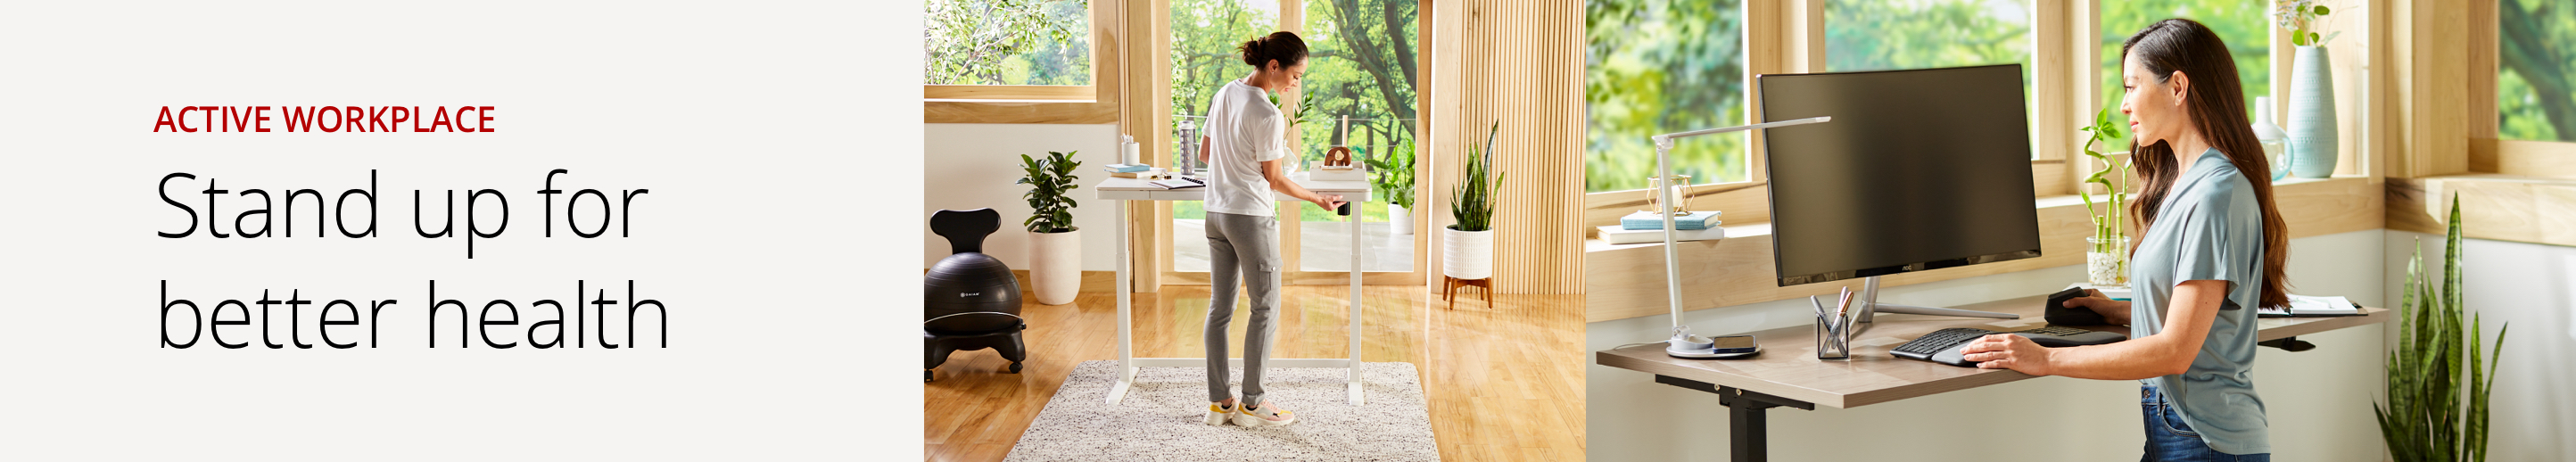 active workplace woman at standing desk and man sitting